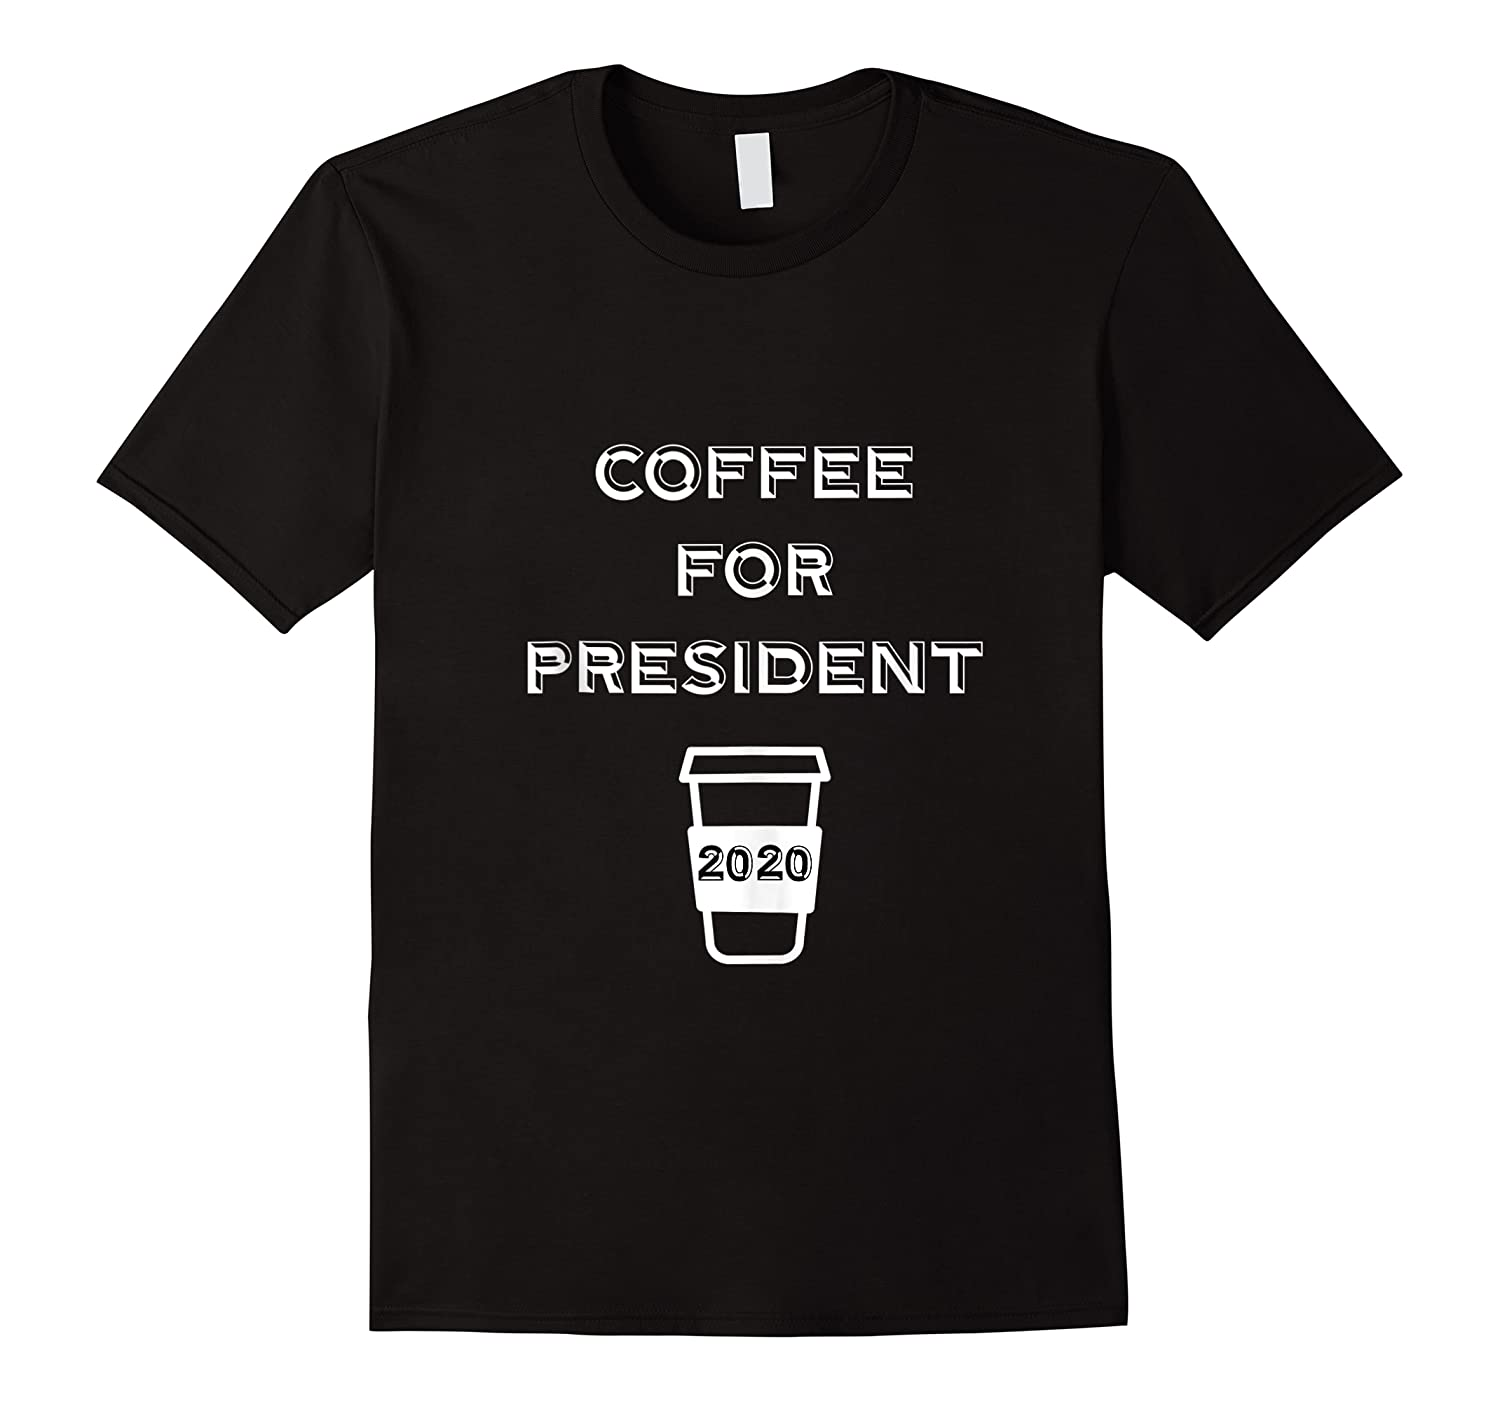 Coffee For President 2020 Funny Presidential Election Day Tank Top Shirts